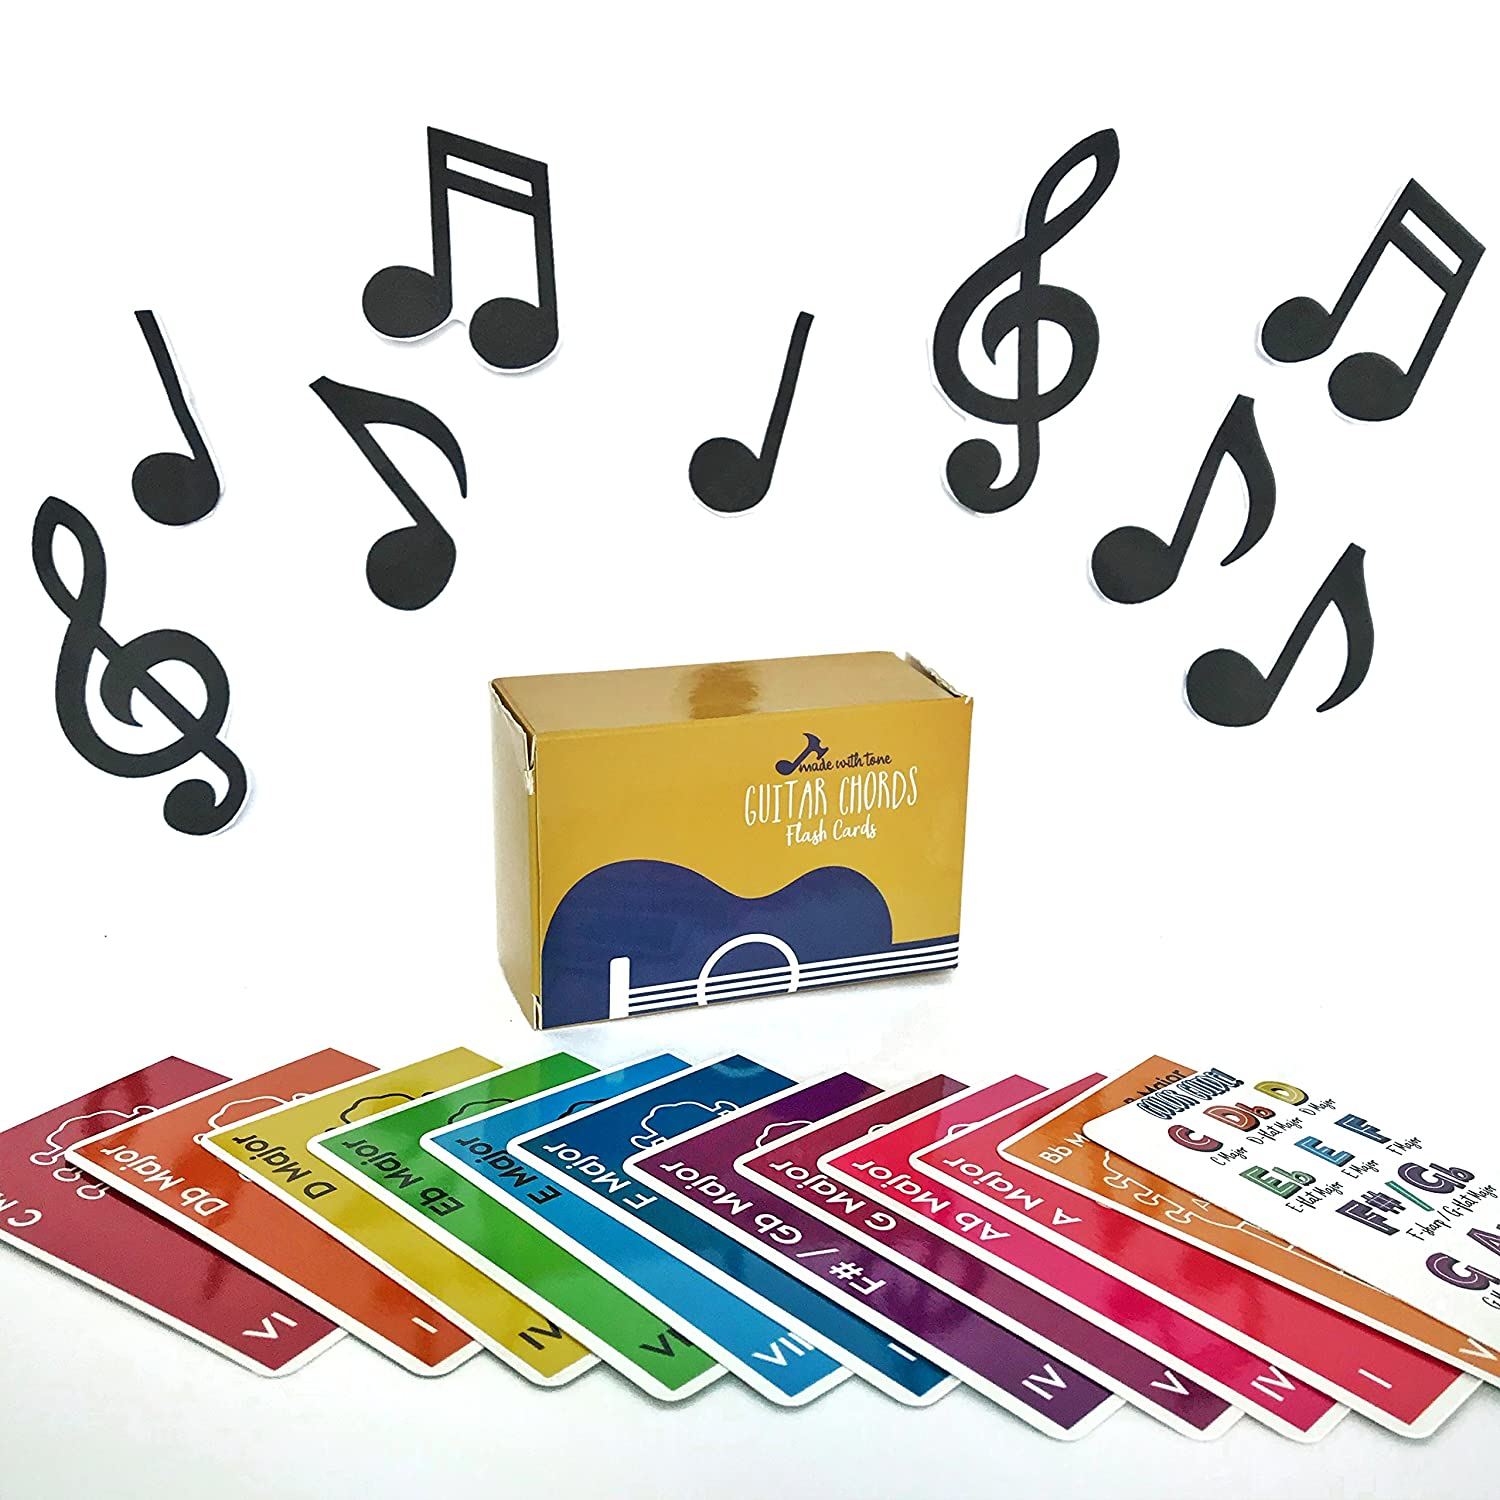 Amazon made with tone guitar chords flash cards a great amazon made with tone guitar chords flash cards a great gift for music lovers and beginner musicians all the major chords and notes for be a hexwebz Images